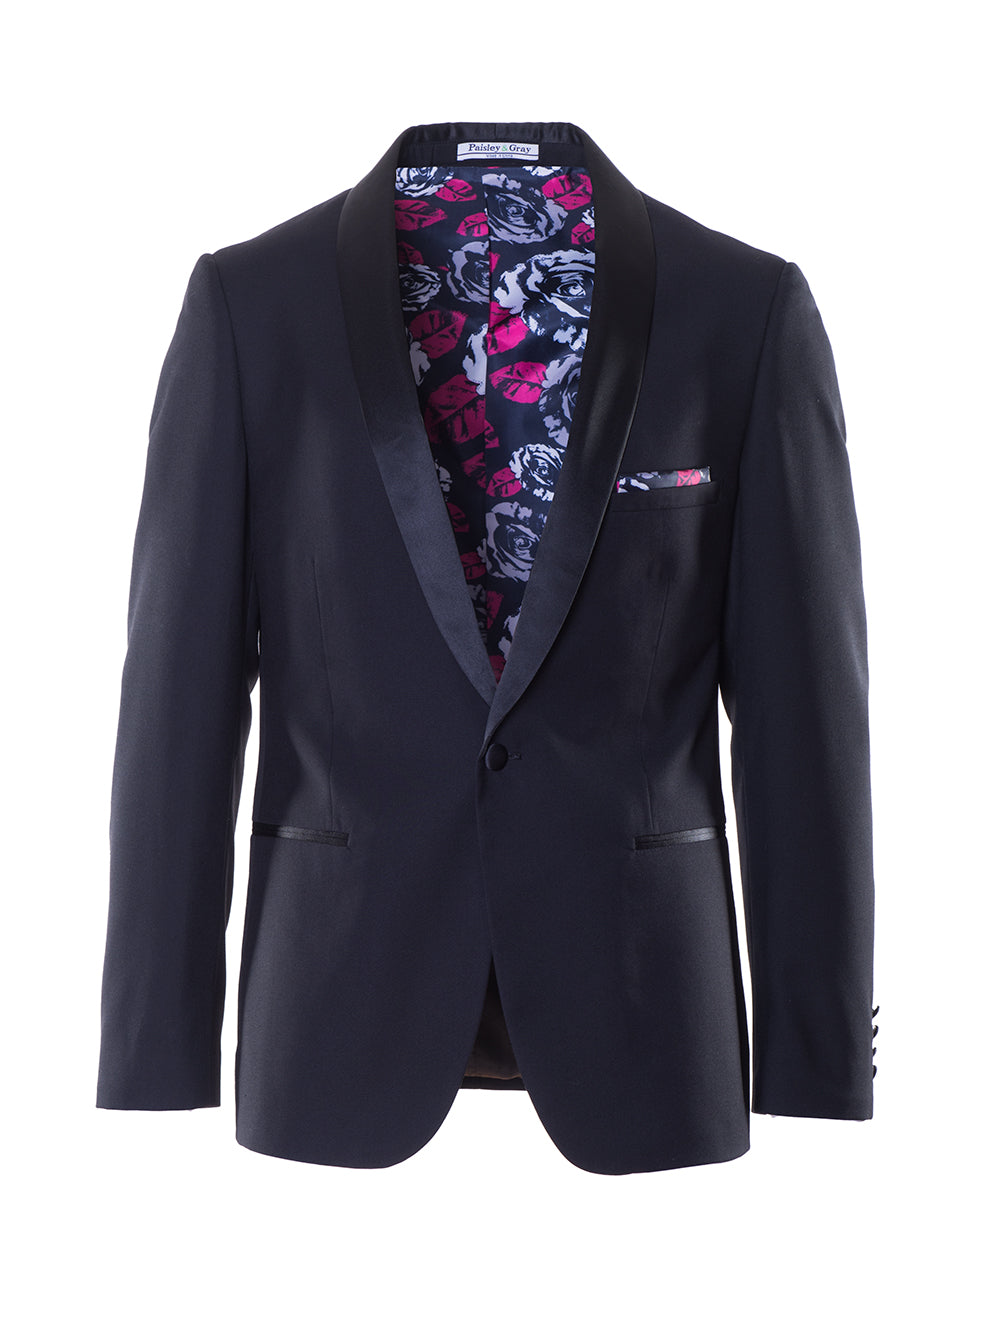 Regent Shawl Dinner Jacket - Black